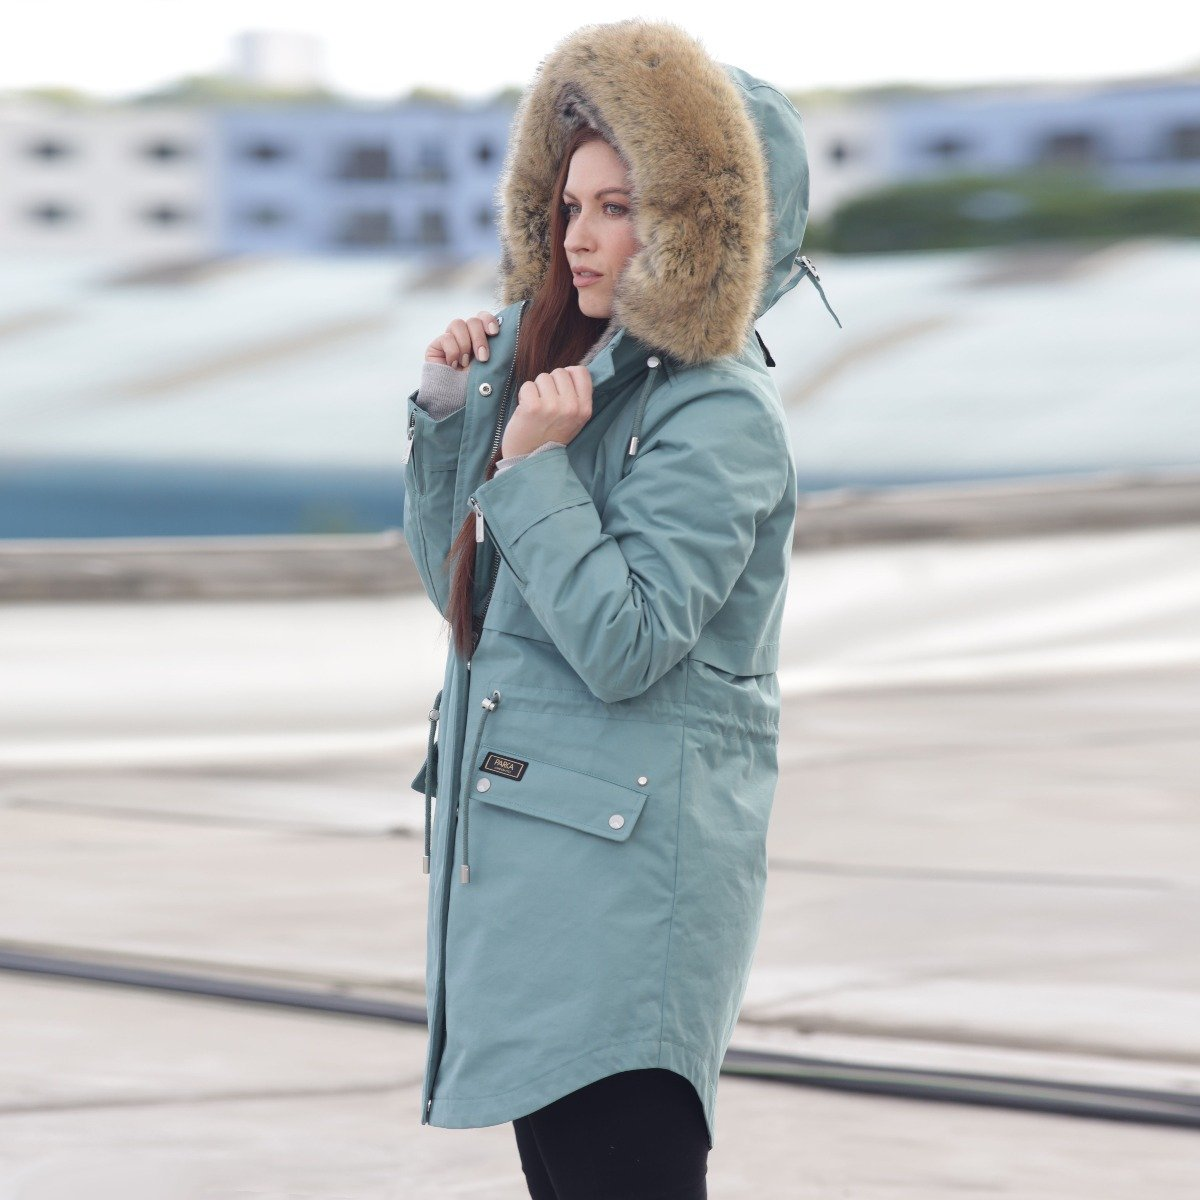 Winter parka for women teal